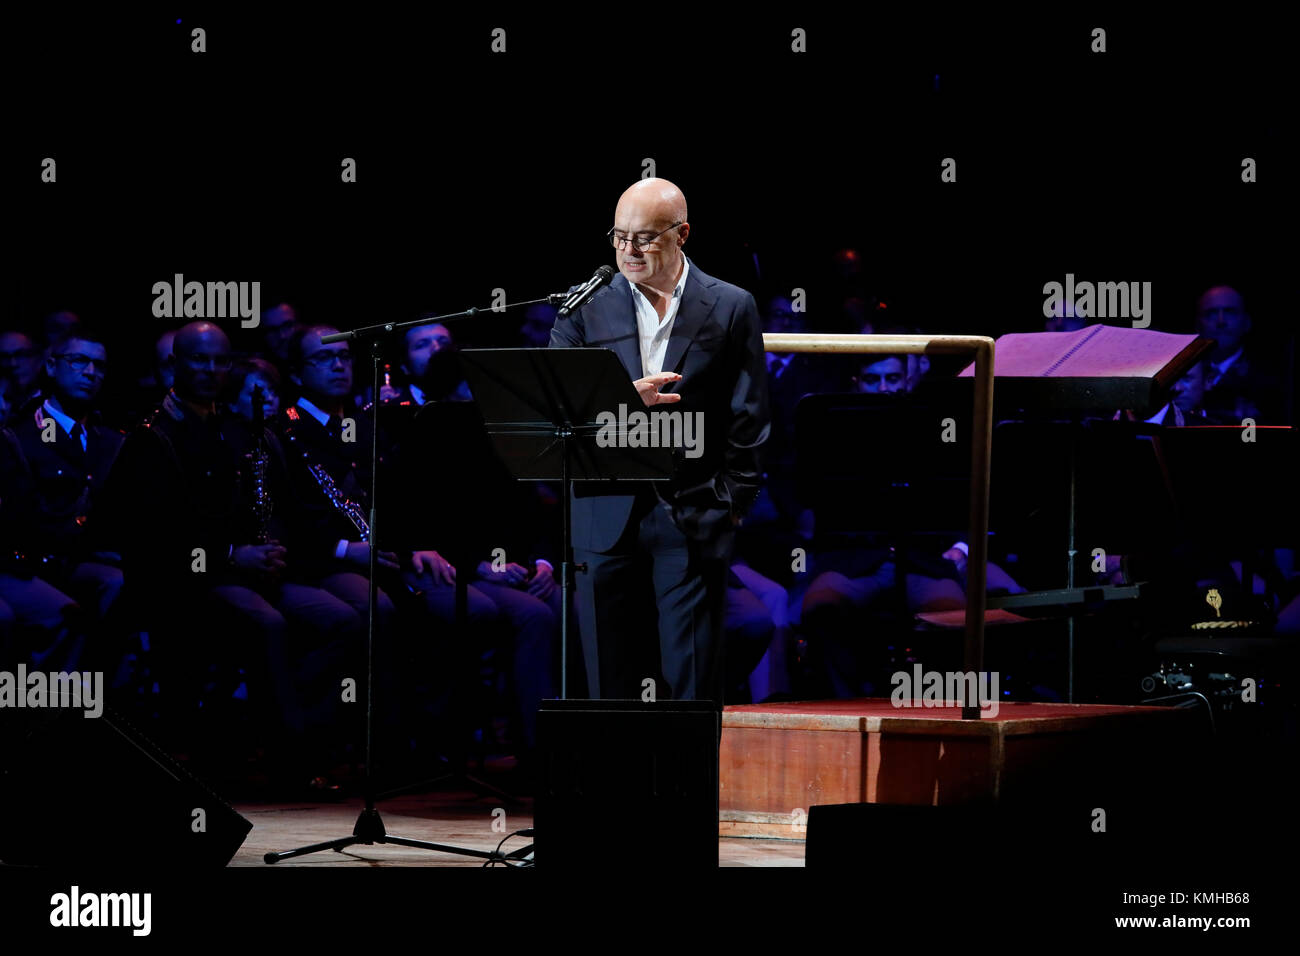 Rome, Italy - 11 December 2017: the actor Luca Zingaretti performs on the stage of the Auditorium Parco della Musica, - Stock Image